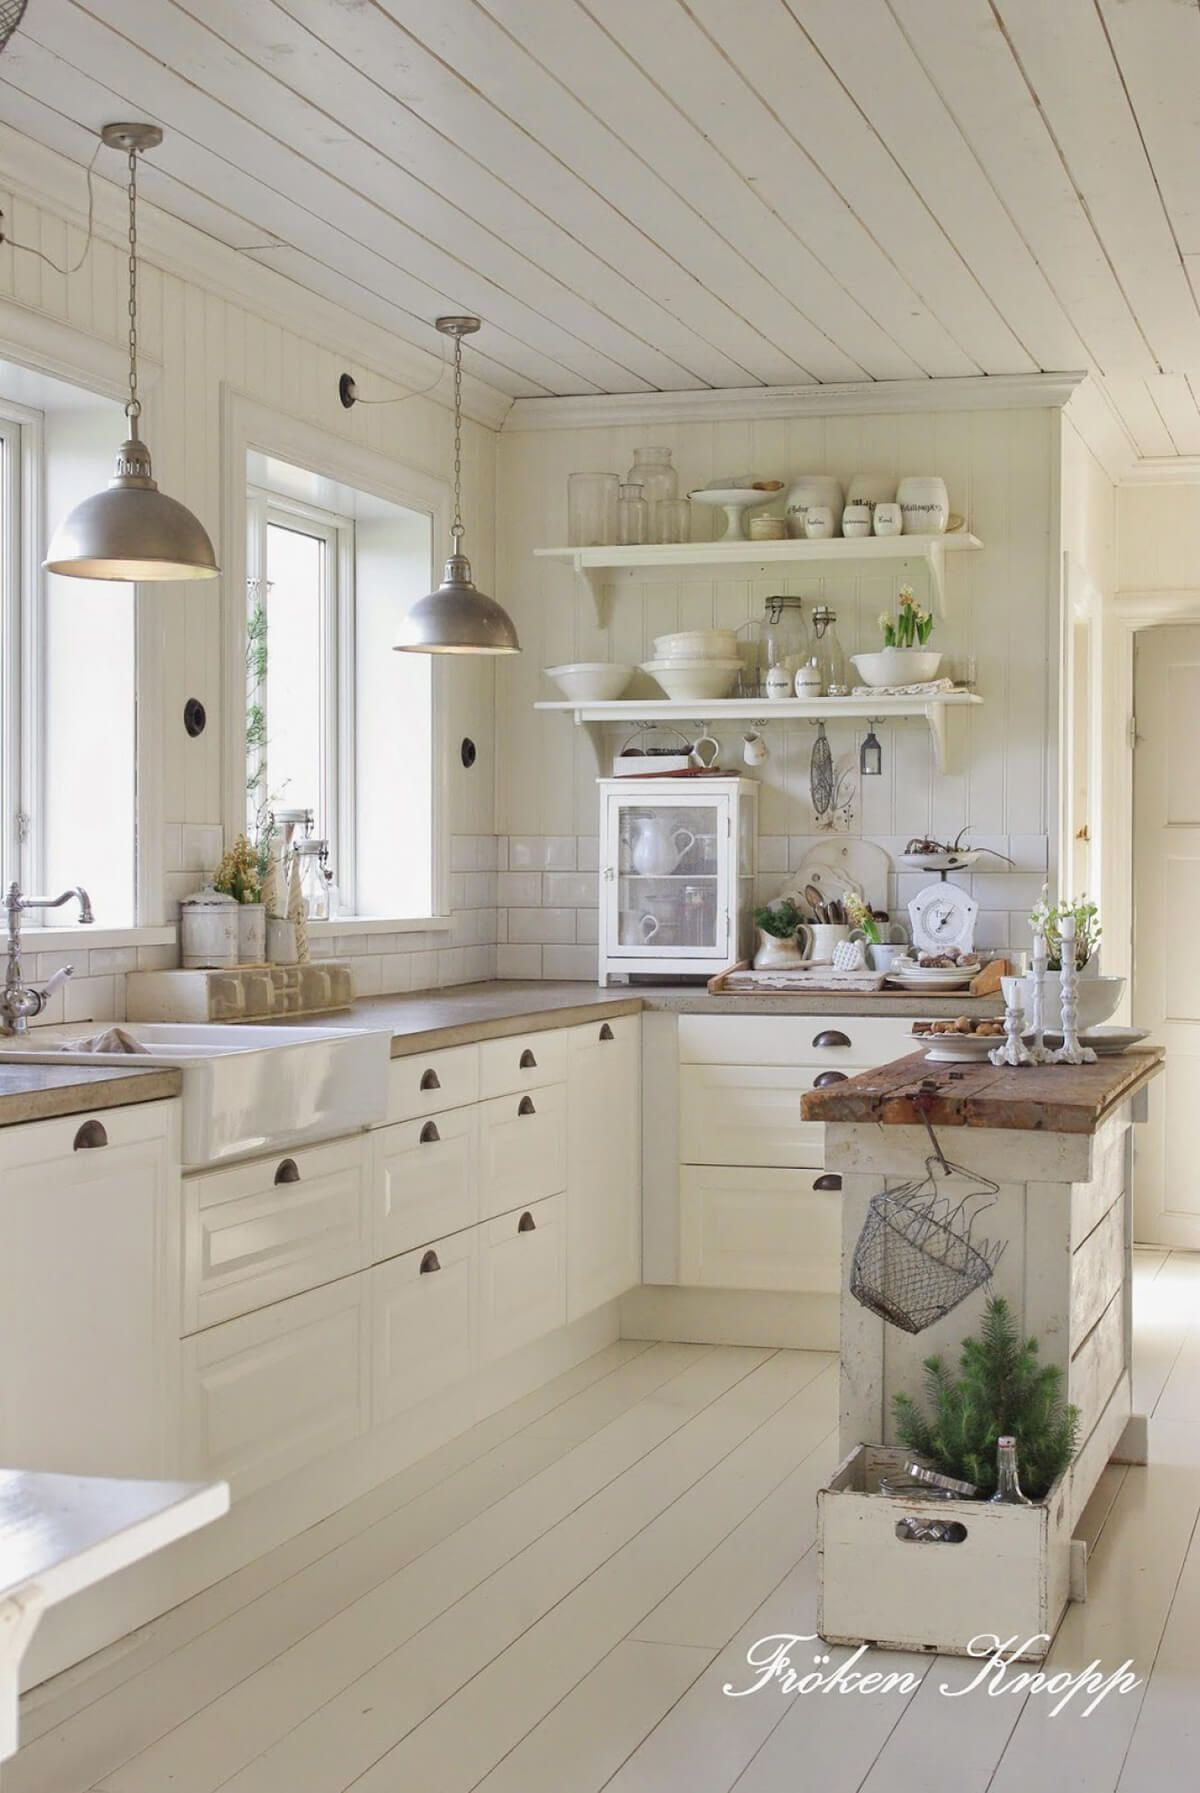 French Country Kitchen Enchanting 35 Charming French Country Decor Ideas With Timeless Appeal Design Inspiration